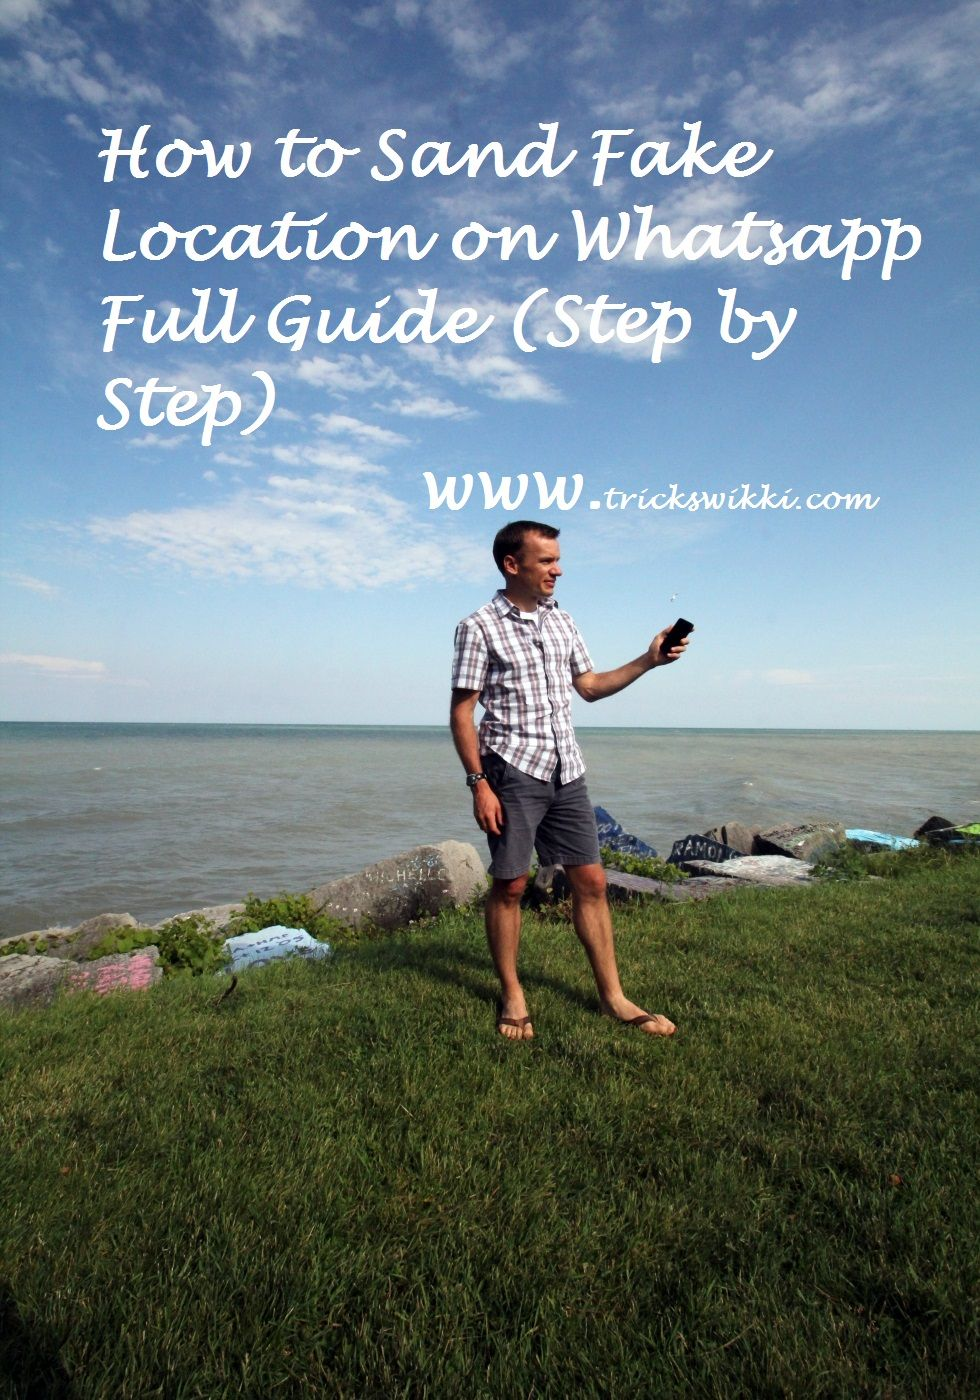 How to sand fake location on whatsapp to friends  Full guide